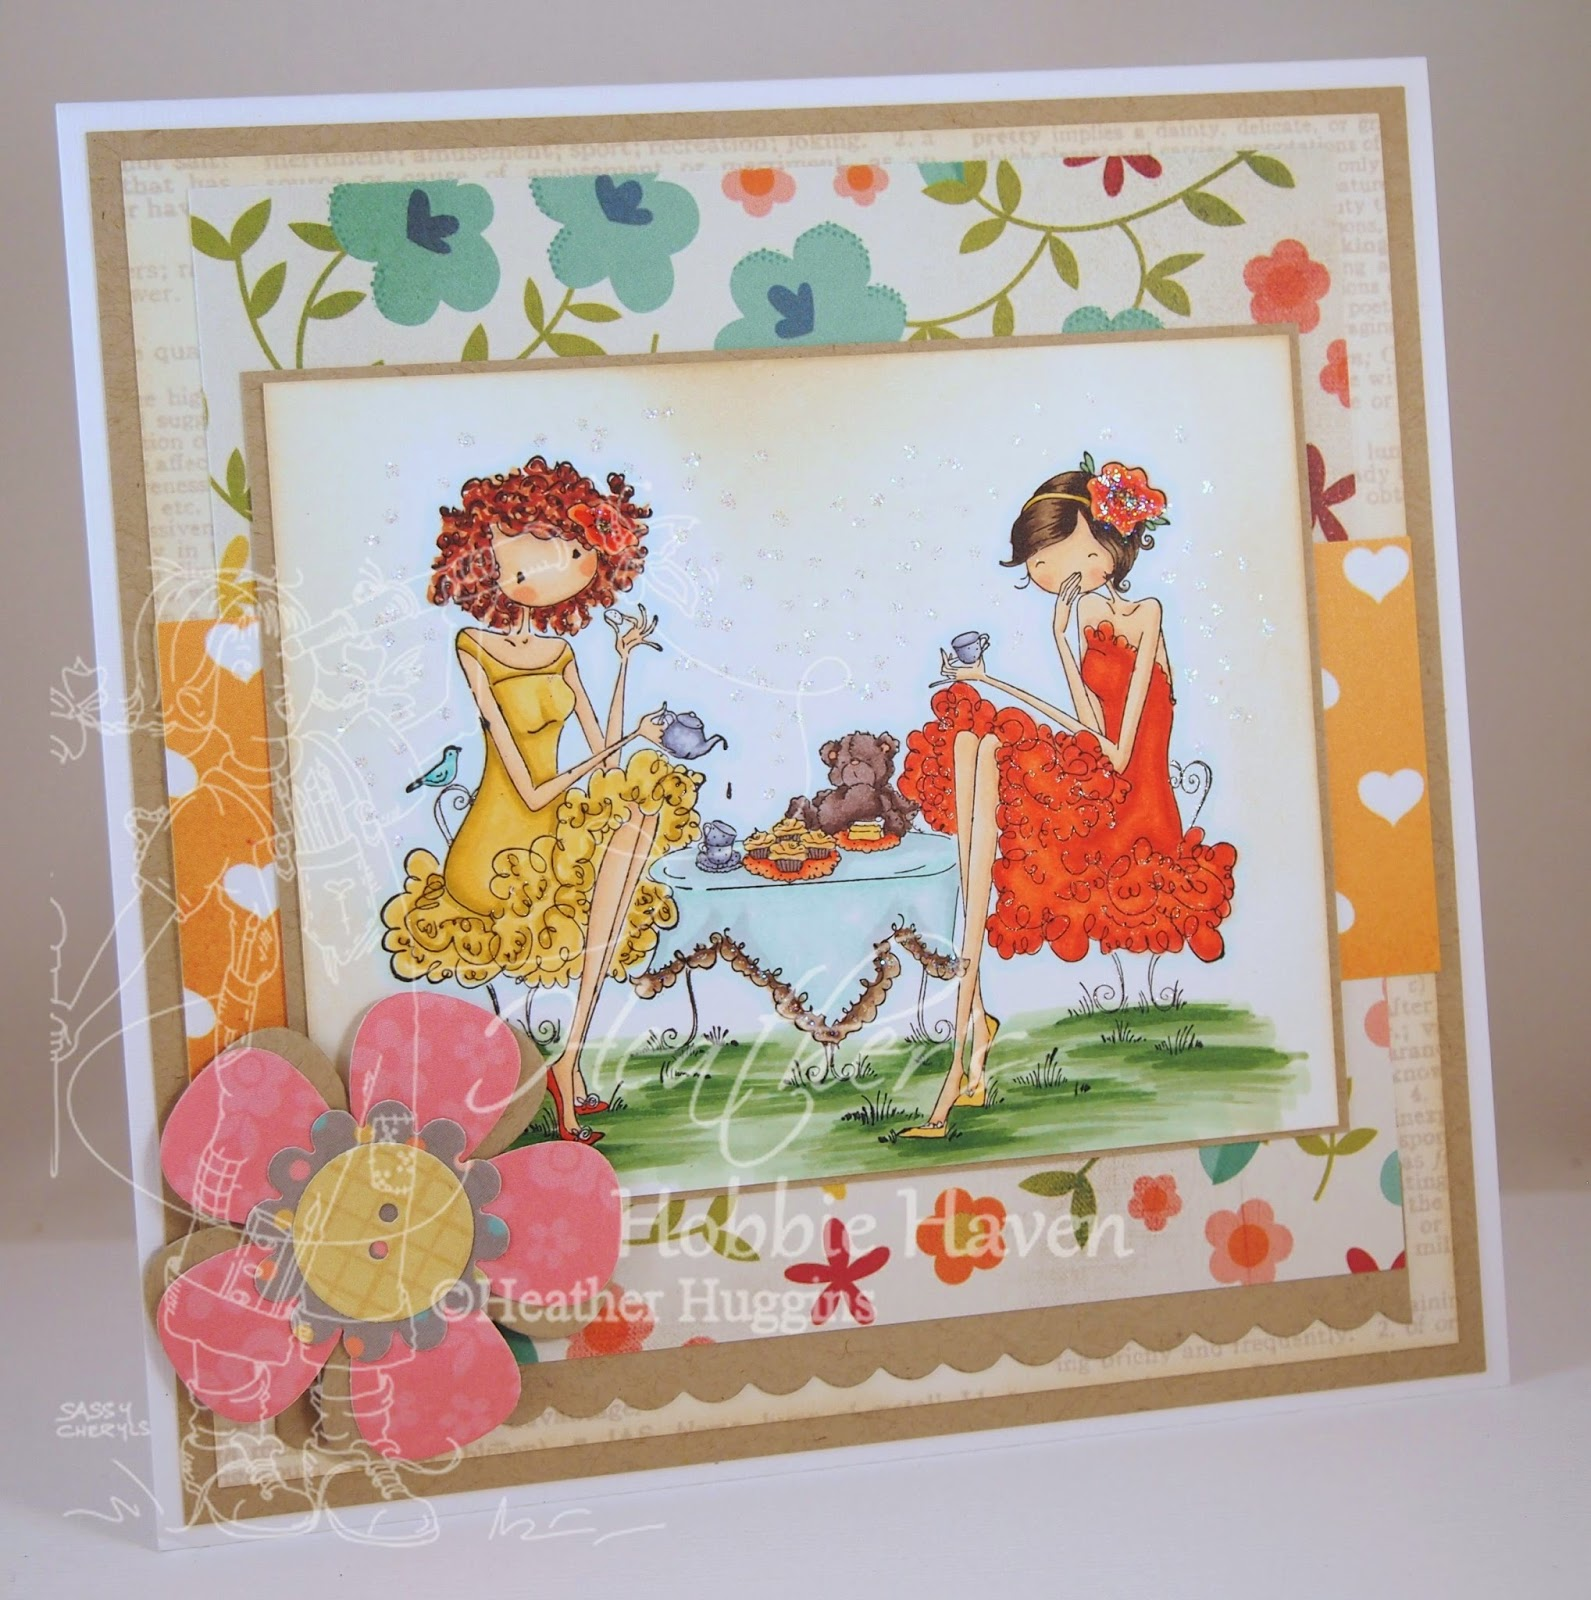 Heather's Hobbie Haven - Paige & Peggy Pour Some Tea Card Kit